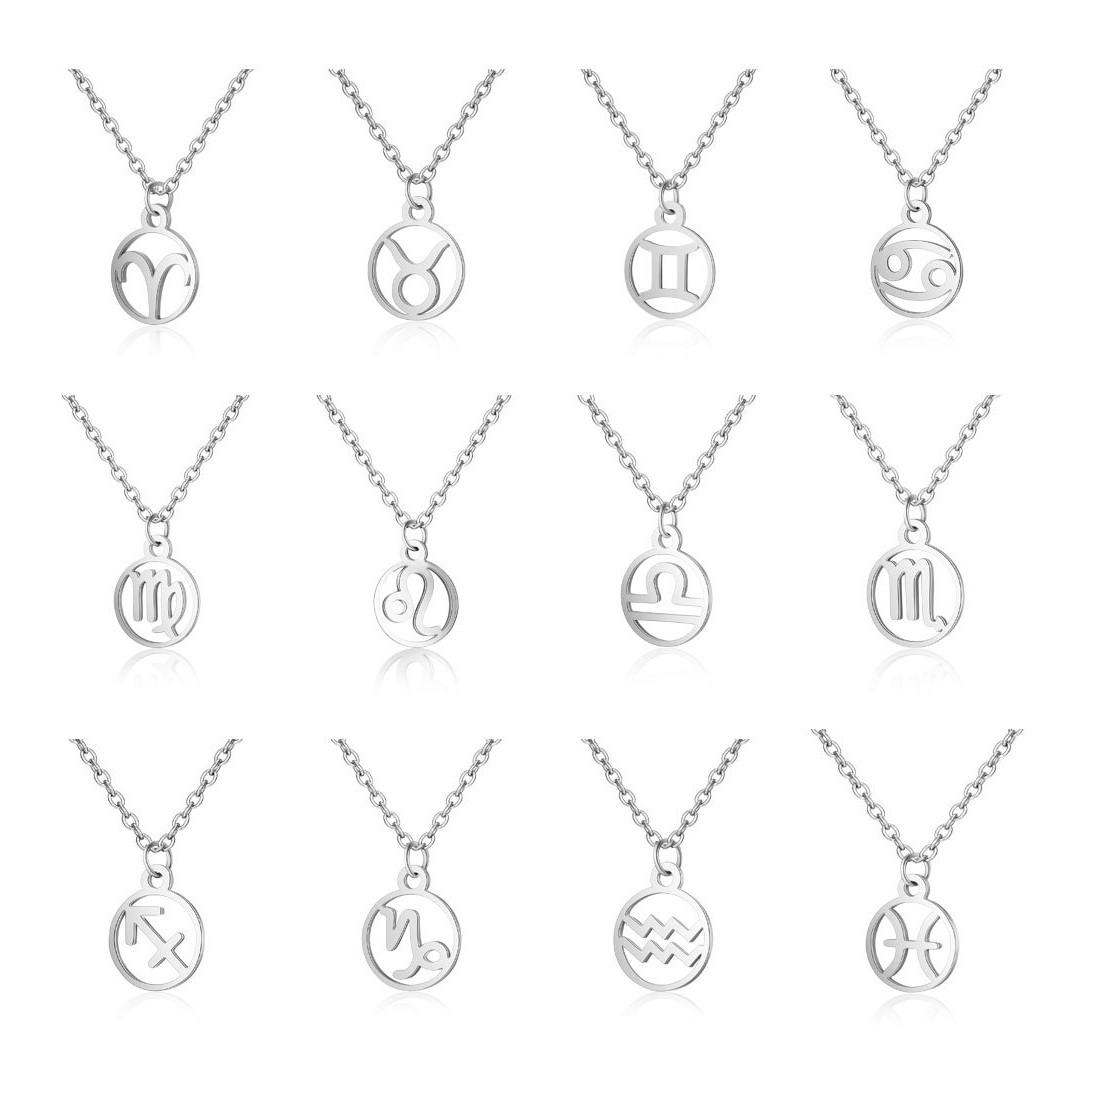 2019 Titanium steel jewelry necklace star sign hot 12  zodiac necklace stainless steel pendant necklace